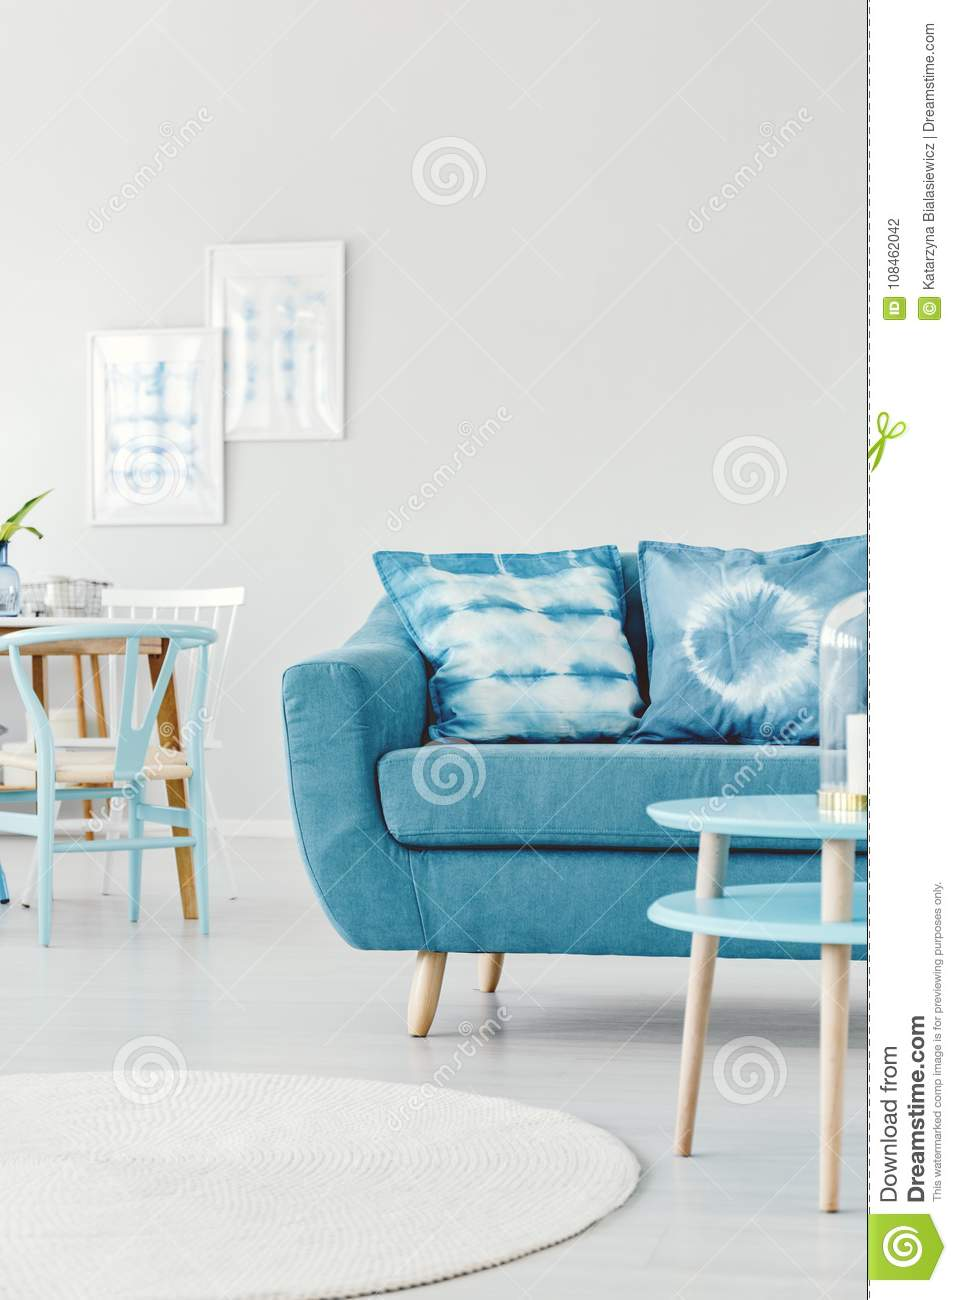 Turquoise And White Living Room Stock Photo - Image of scandi ...